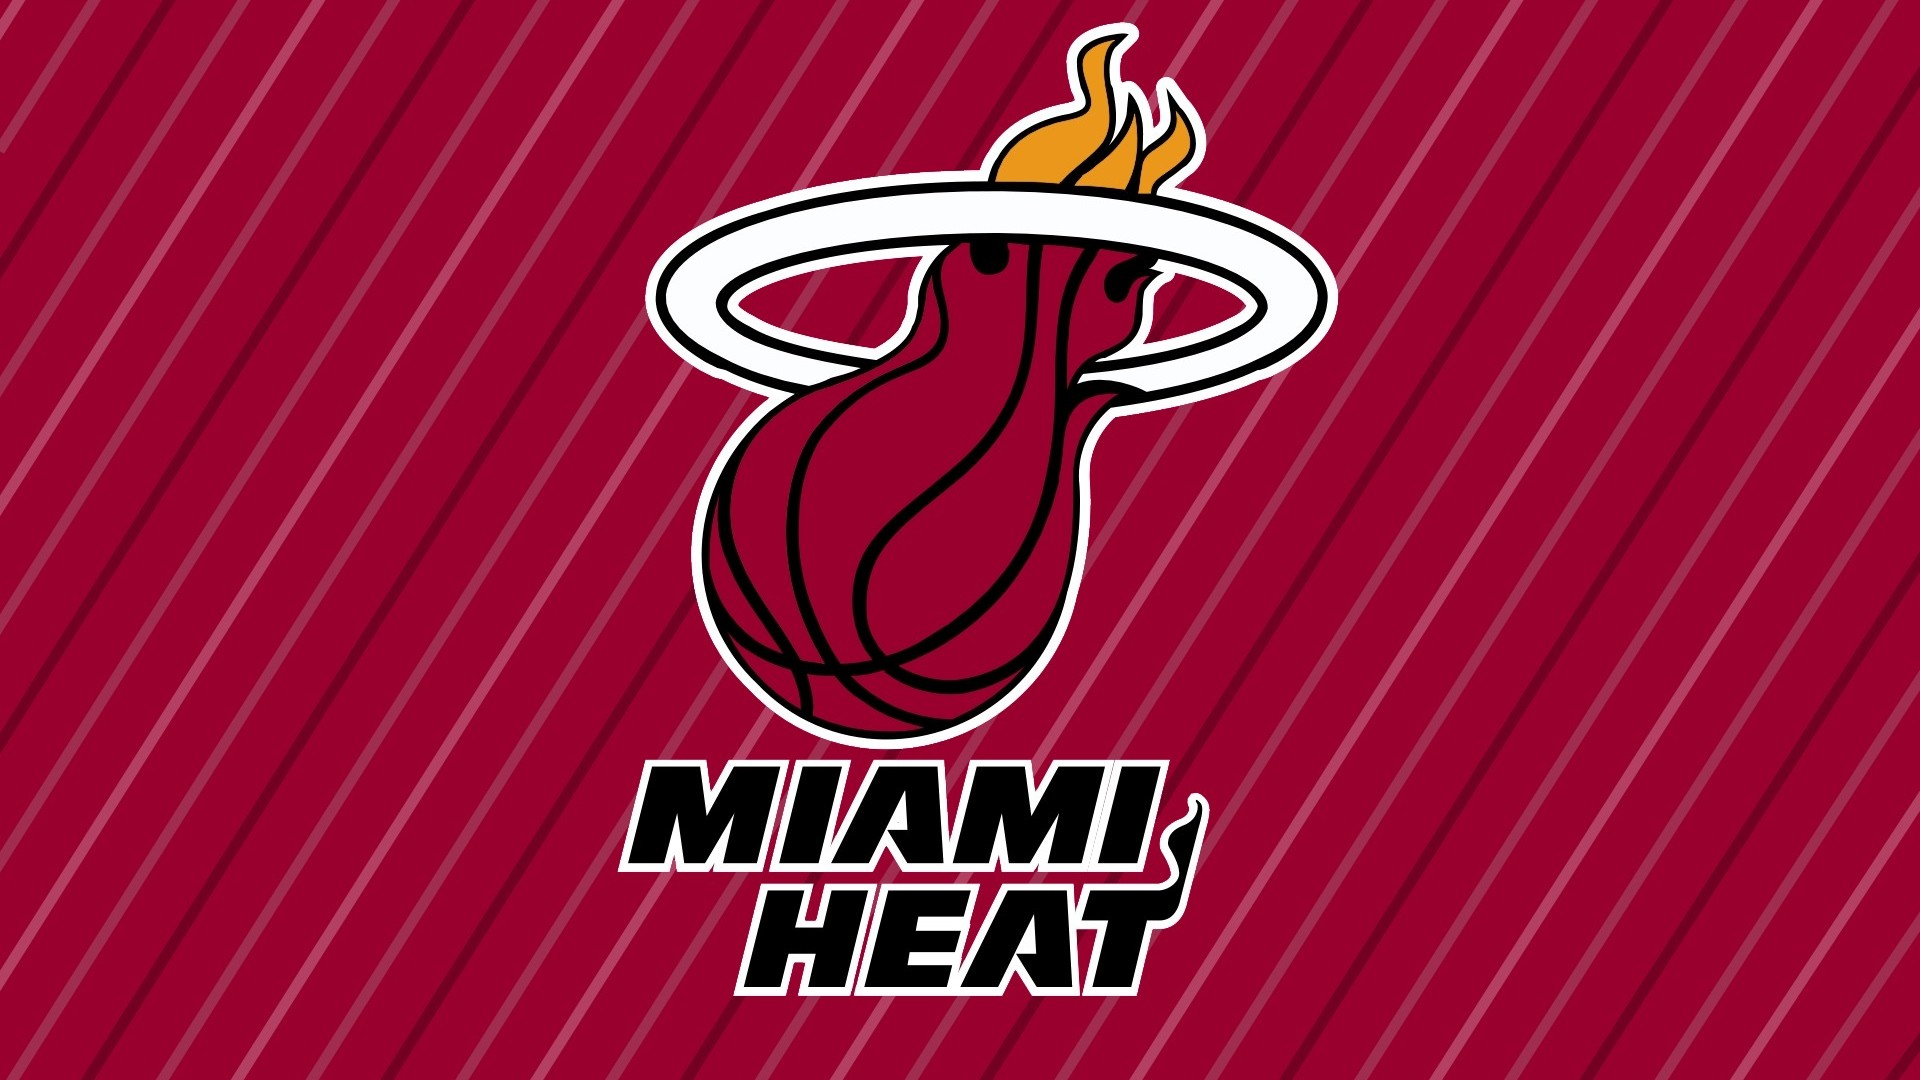 Wallpapers HD Miami Heat 2019 Basketball Wallpaper 1920x1080